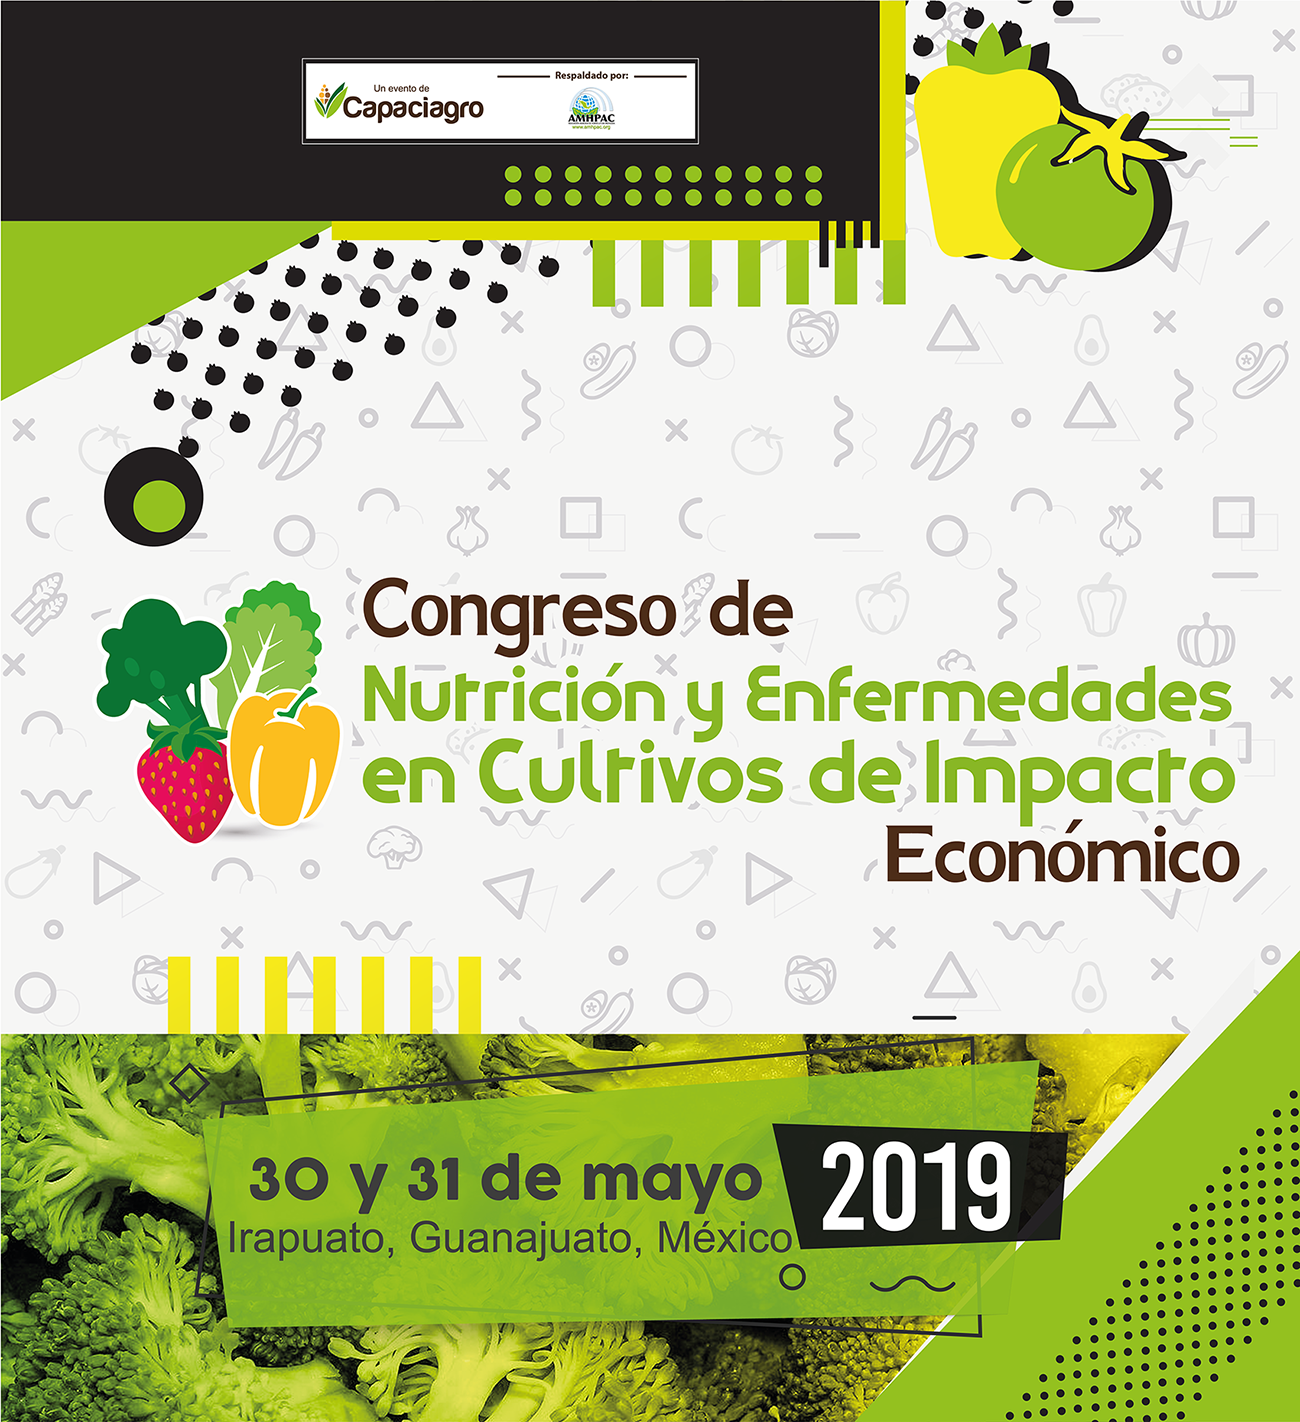 https://manejodenematodos.com/wp-content/uploads/2019/02/Slide-website_5.png